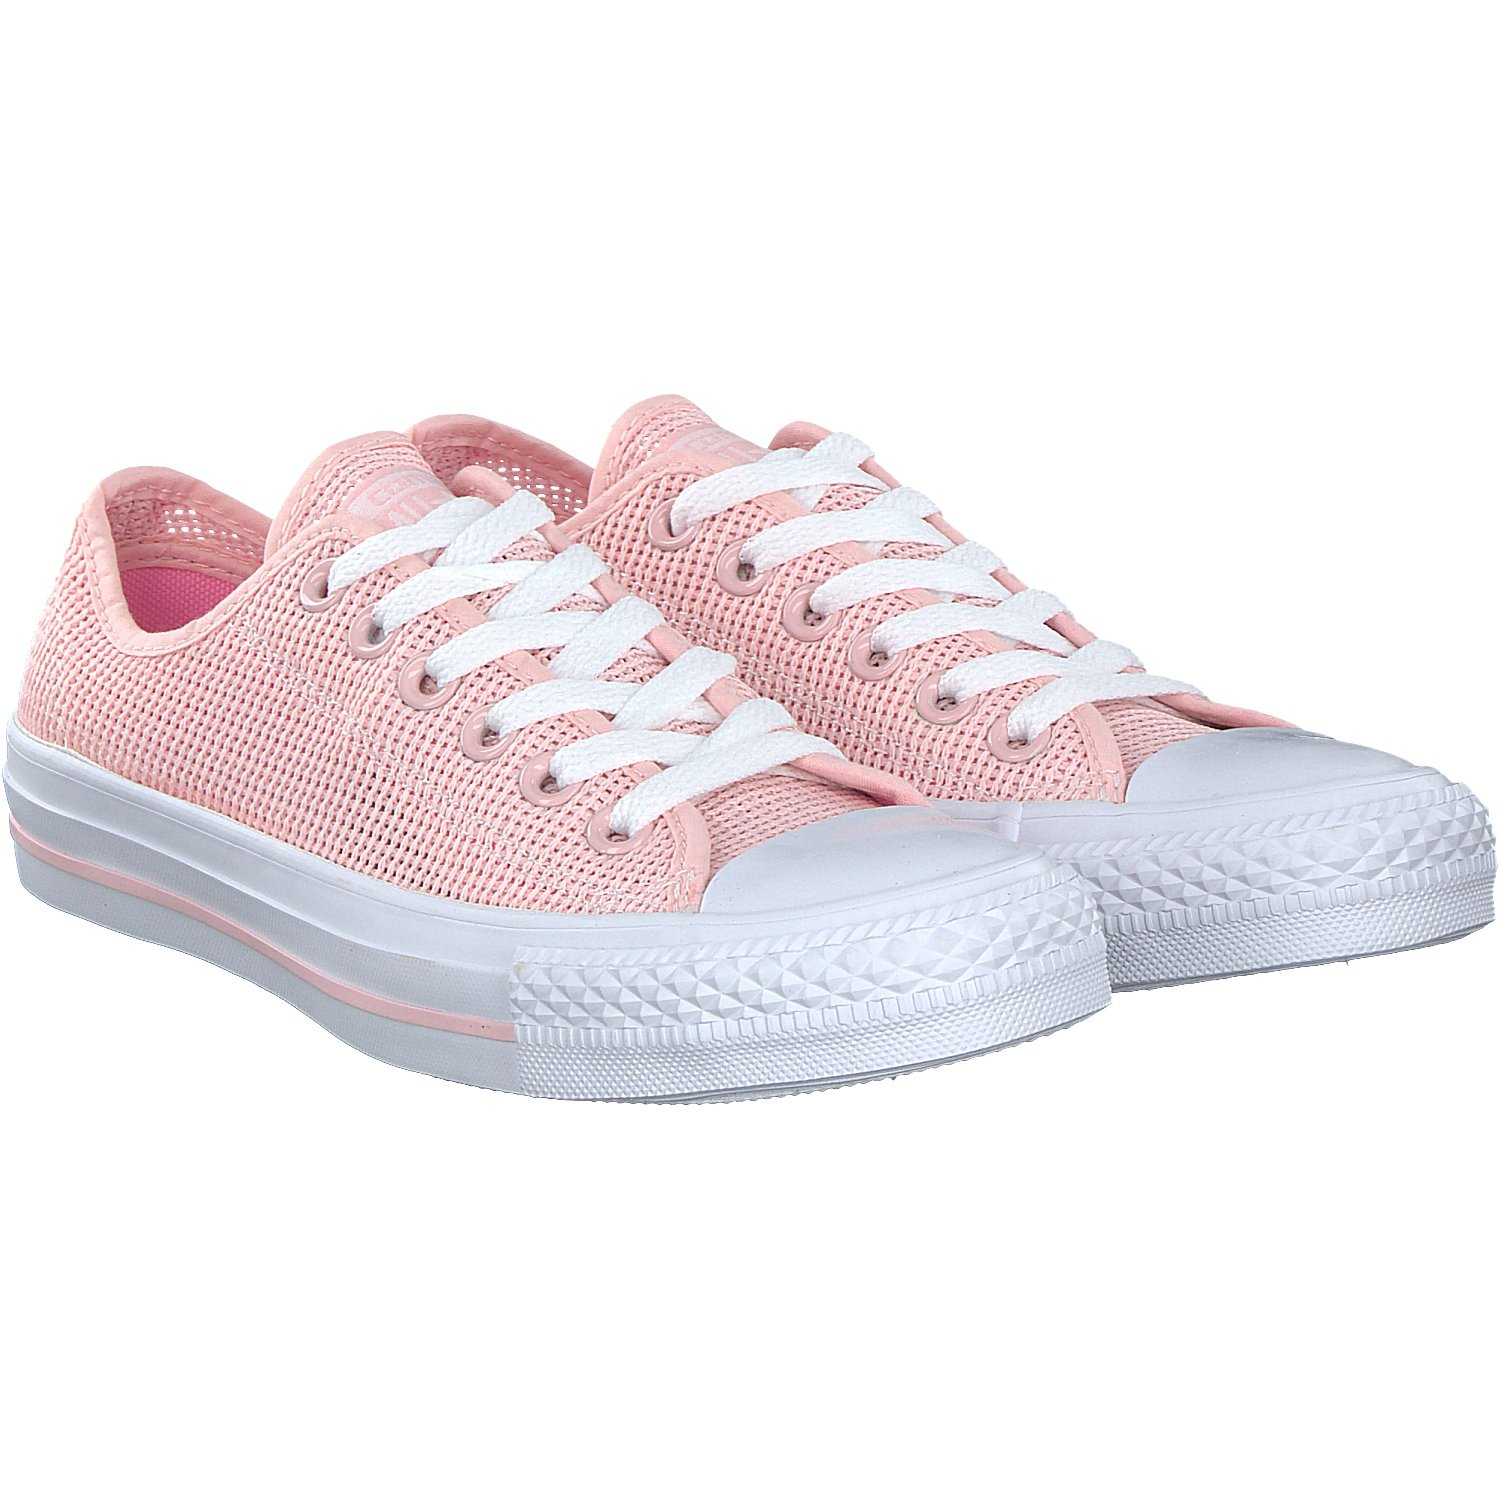 Adidas Damen Chuck Taylor All Star Ox Basketballschuhe